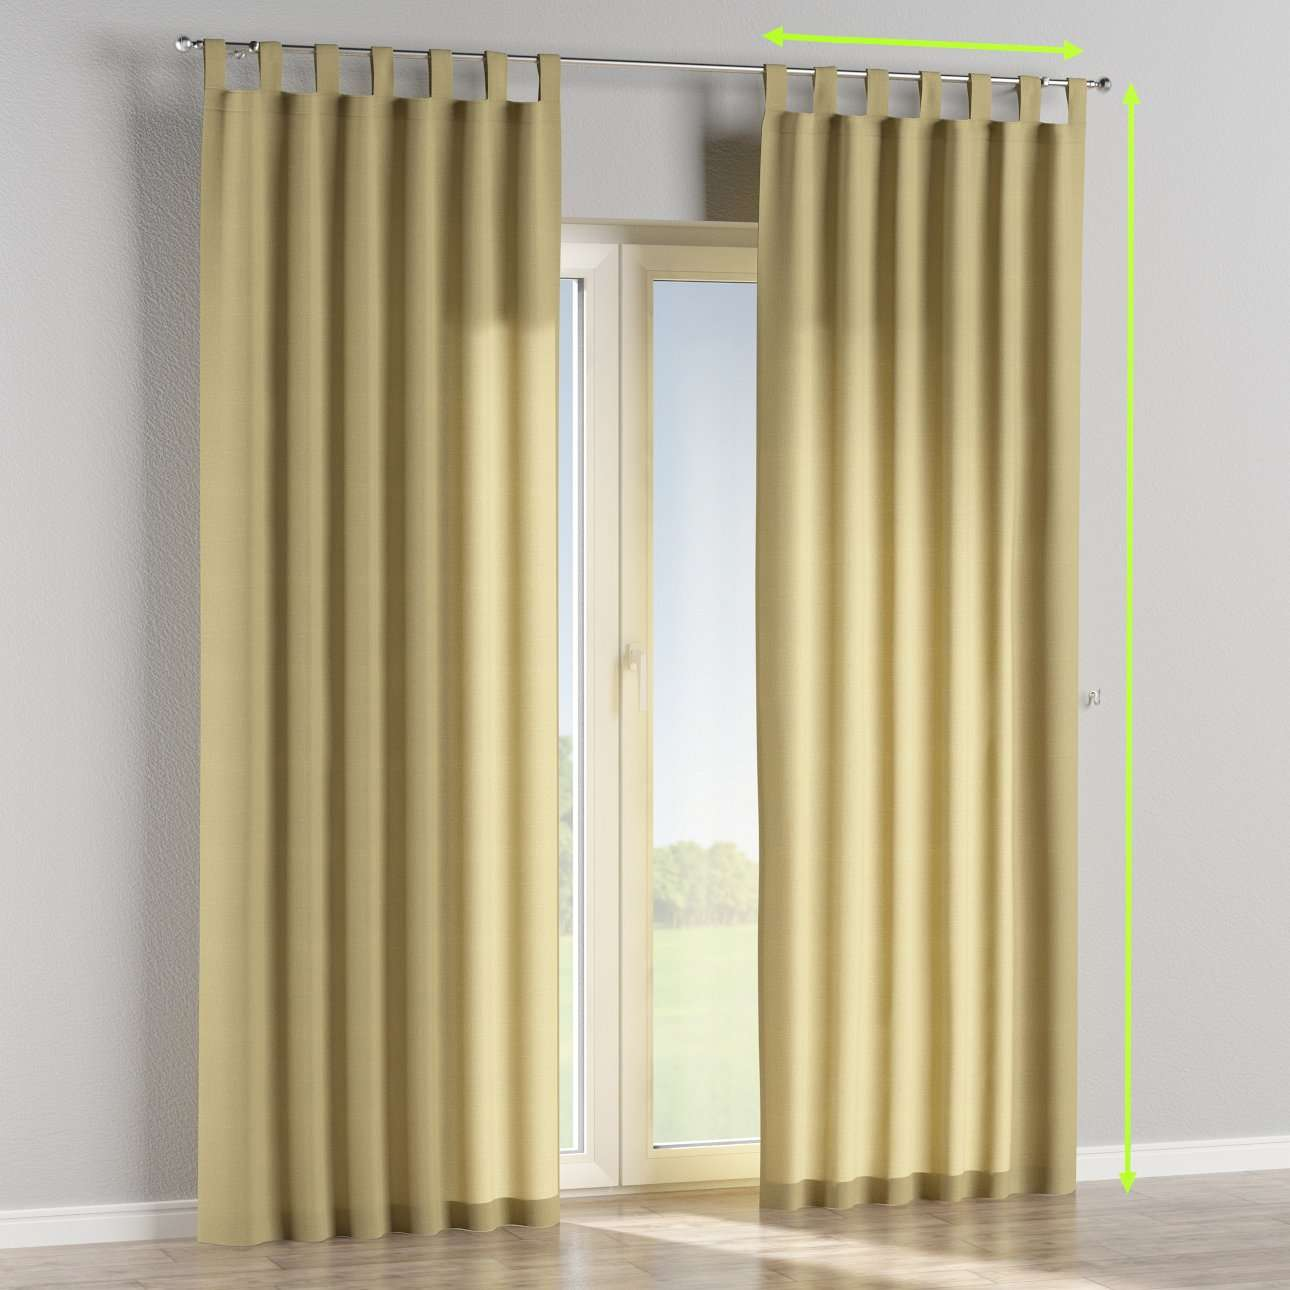 Tab top curtains in collection Cardiff, fabric: 136-22